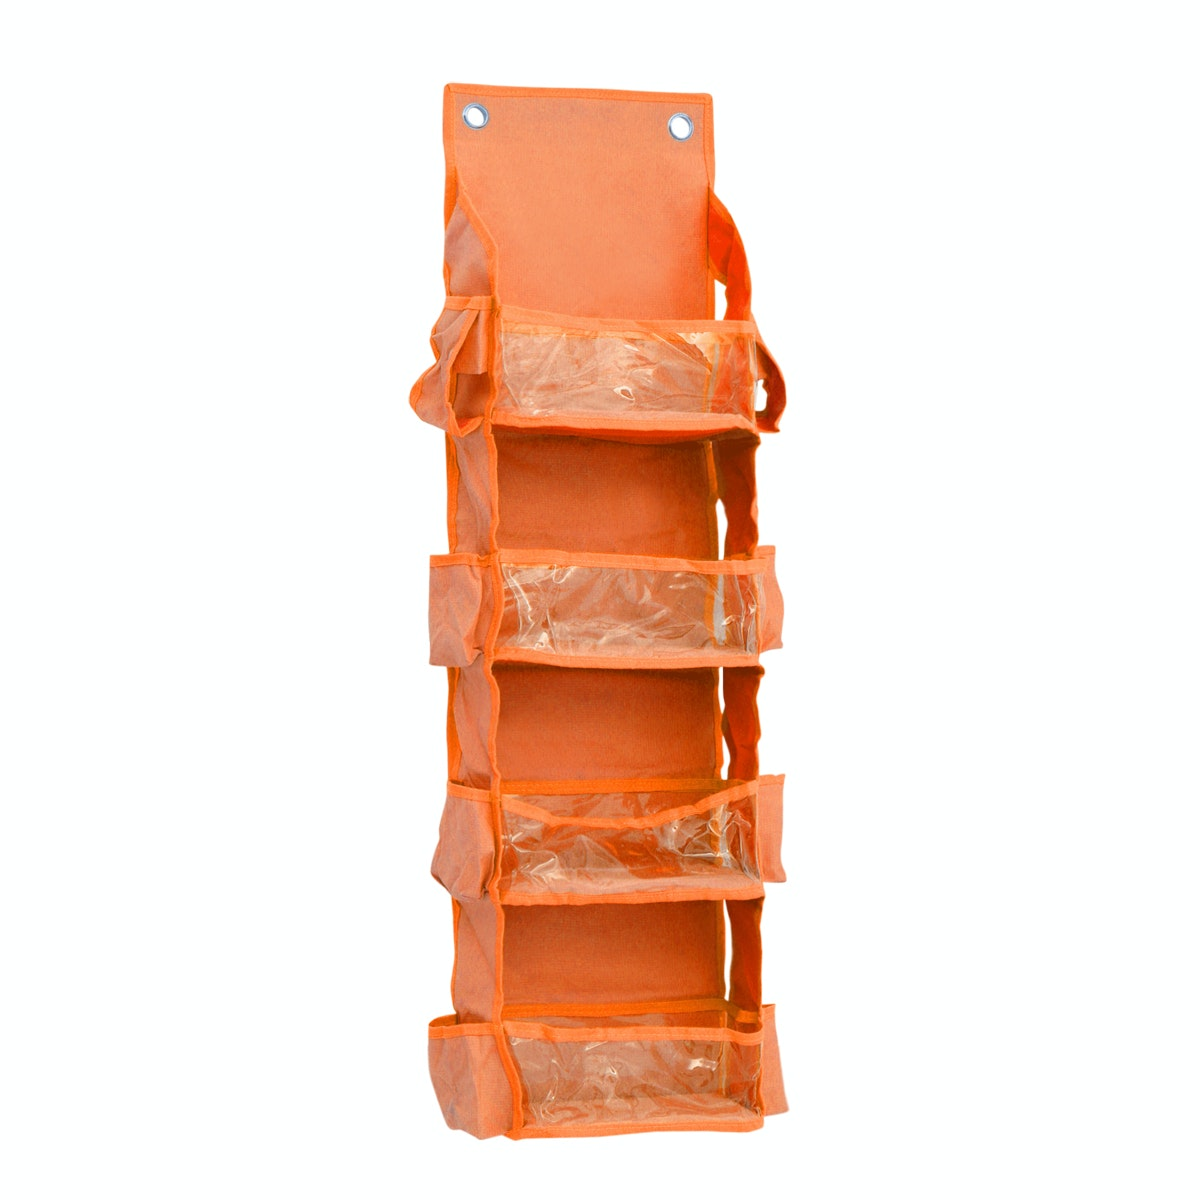 Radysa Organizer Rack Multifunction Organizer Orange